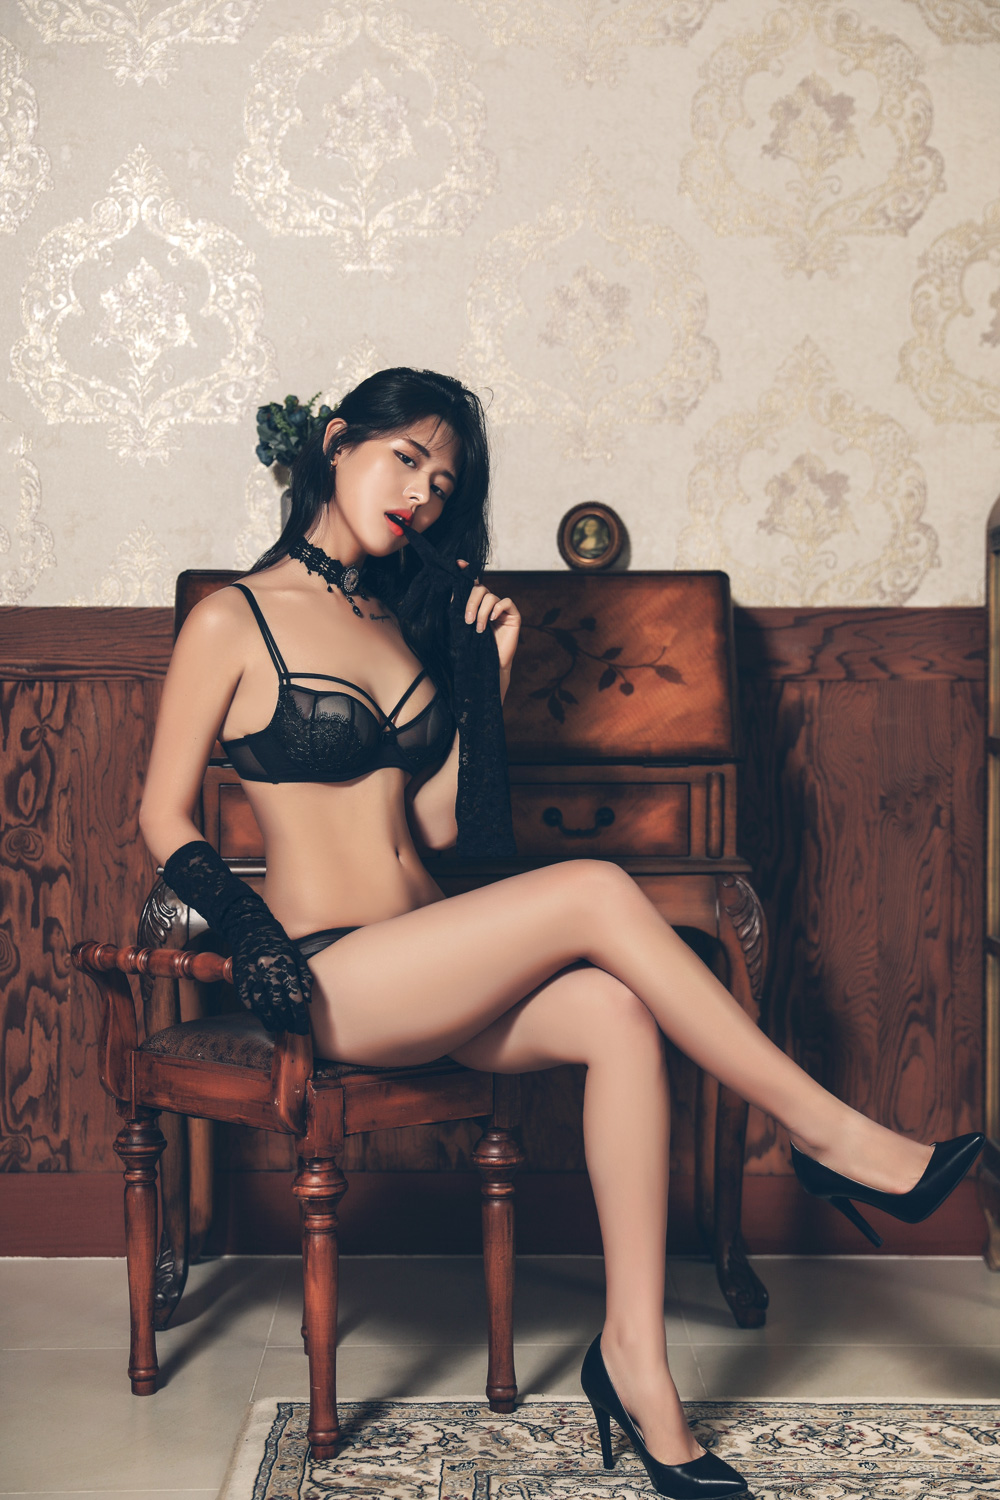 gorgeous Korean girl in lingerie